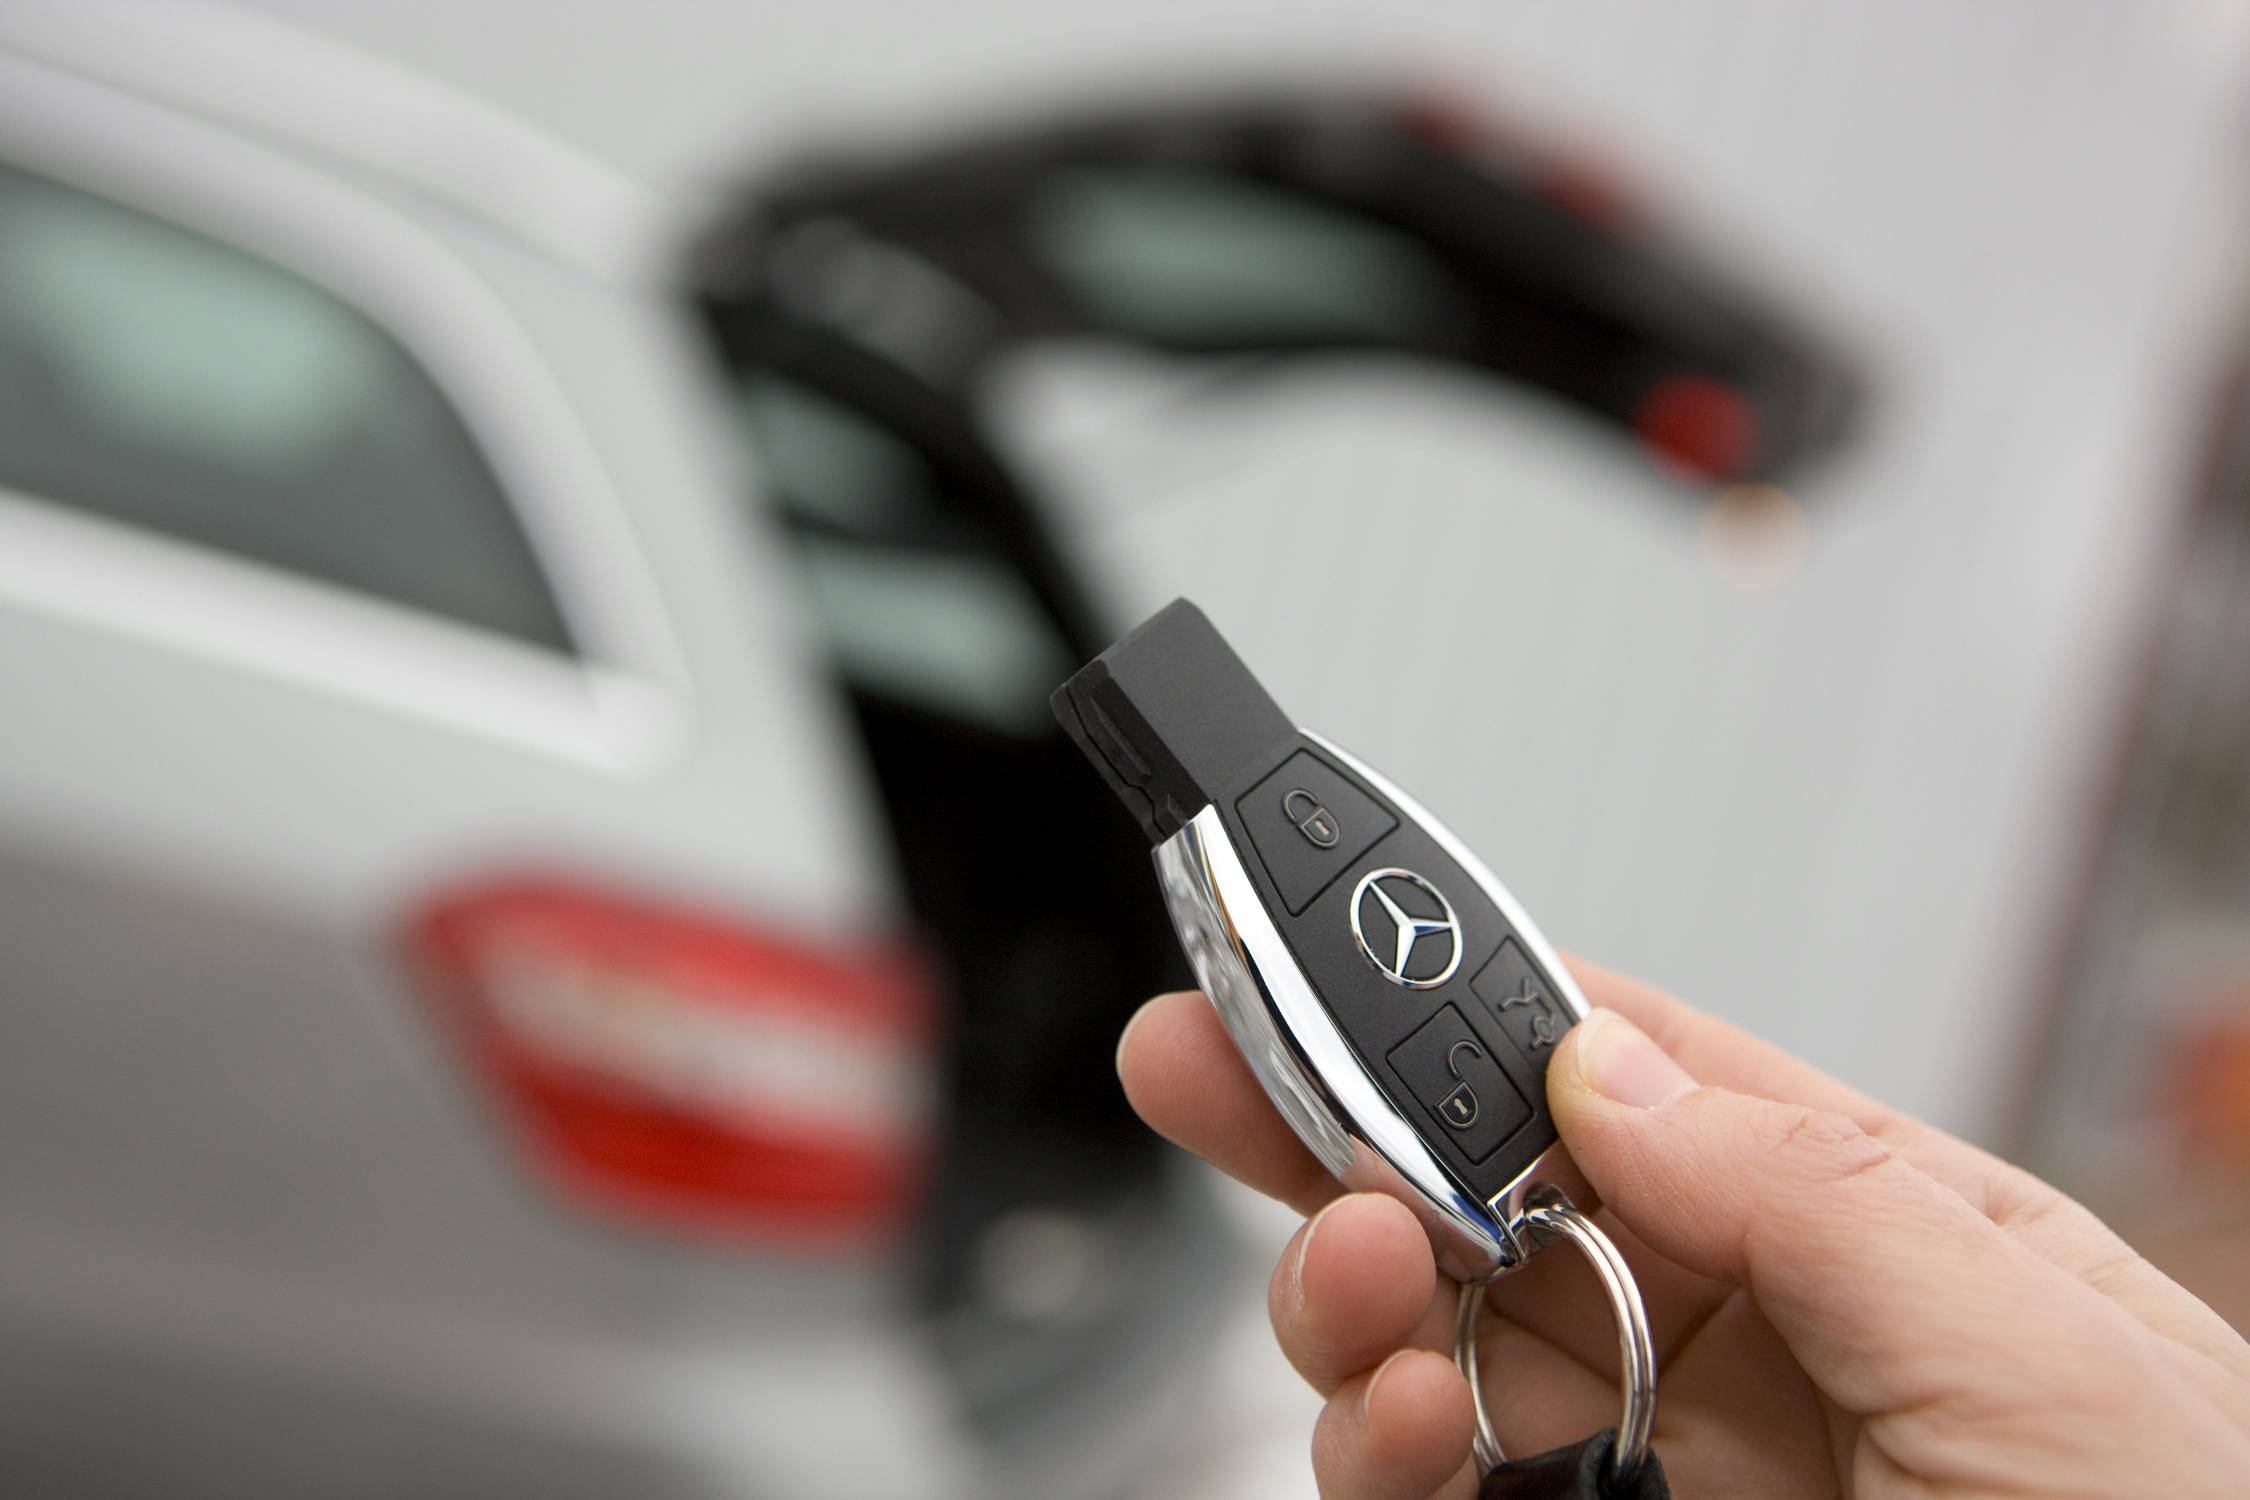 2010 mercedes benz e 350 estate launched photos 1 of 9 for Mercedes benz keys replacement cost